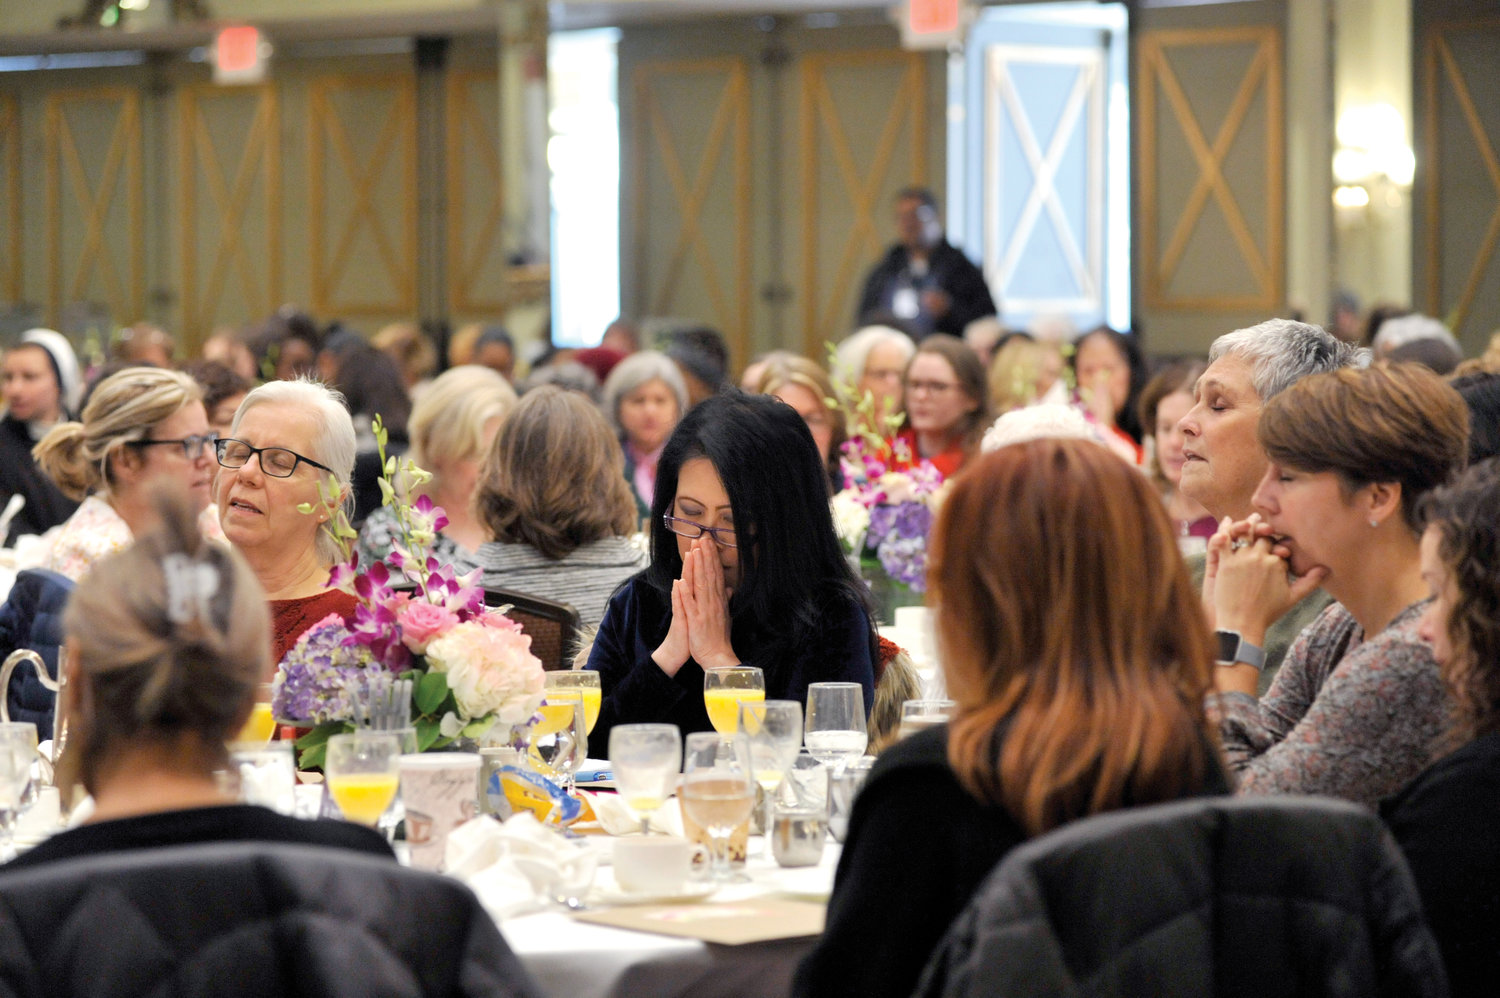 Women join in prayer at the Feminine Genius Brunch at Hilton Westchester in Rye Brook Nov. 16. There were 350 women representing 130 parishes at the brunch sponsored by the archdiocesan Respect Life Office.